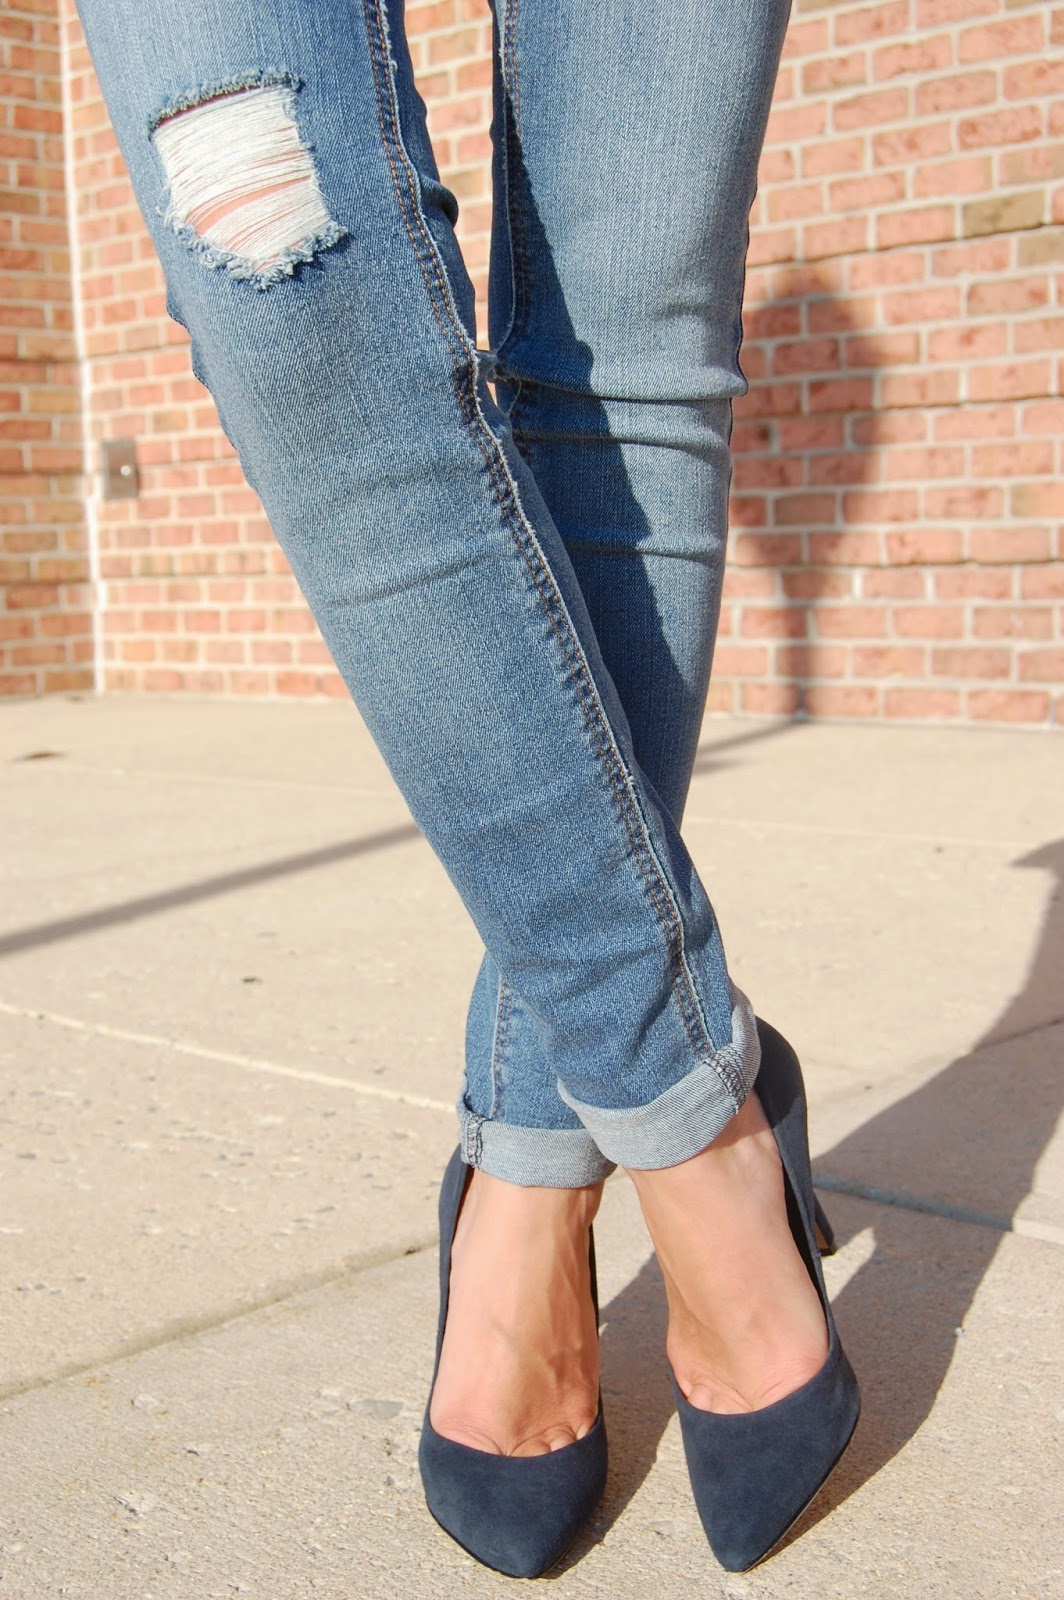 Wearing denim skinny jean overalls, lace top and Charles David navy blue suede heels, fall 2014 look